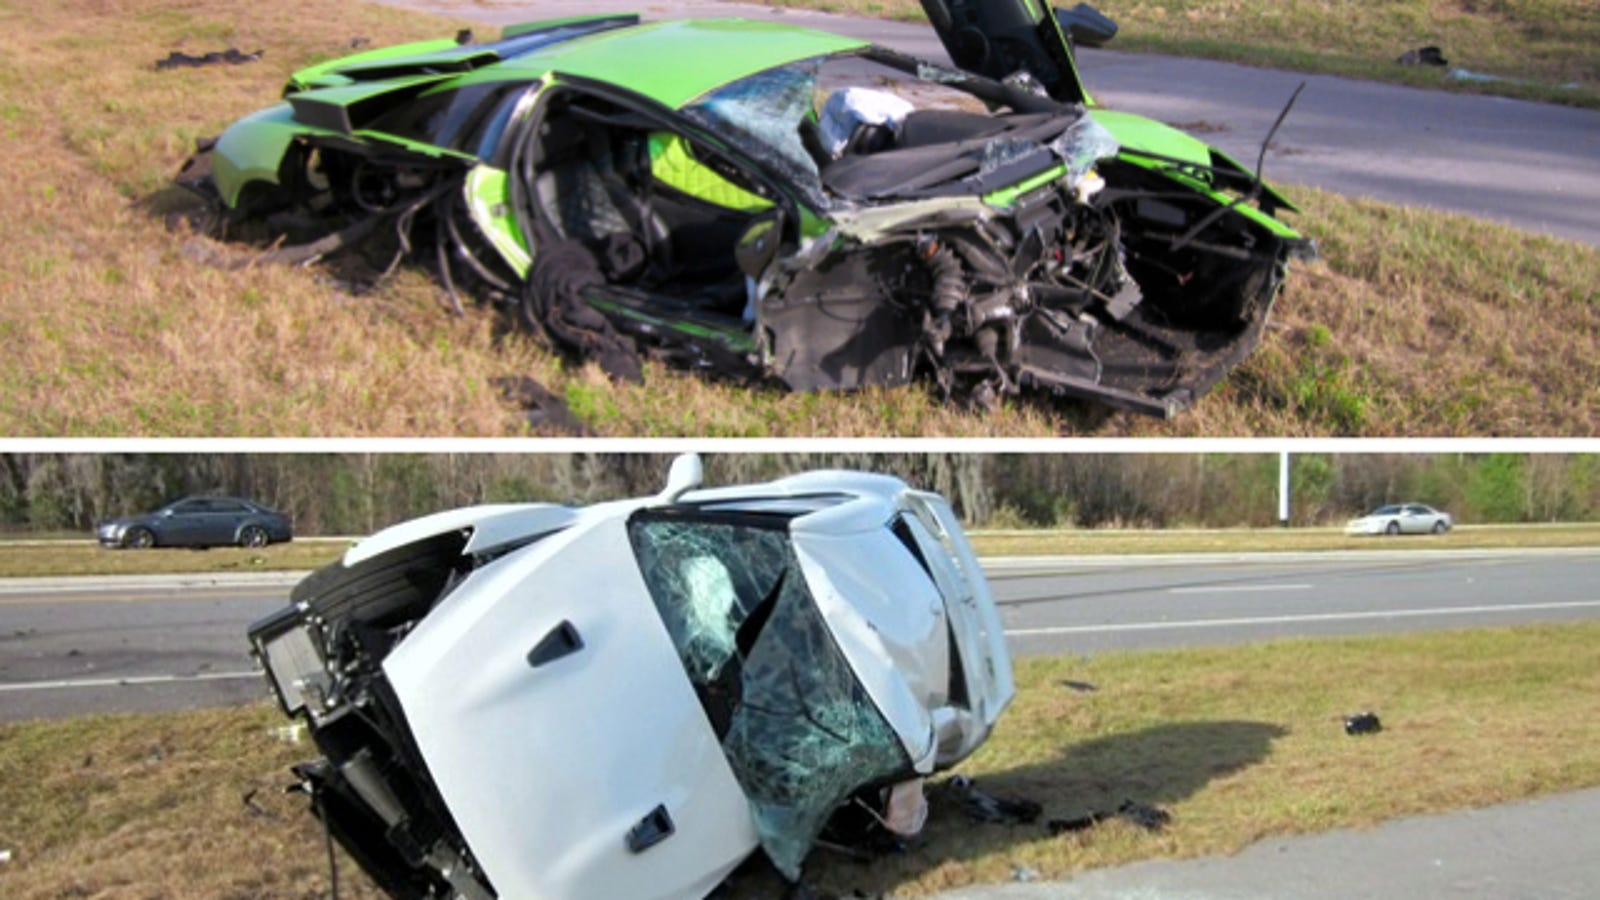 Police Say Deadly Nissan GT-R/Lamborghini Crash Was Not